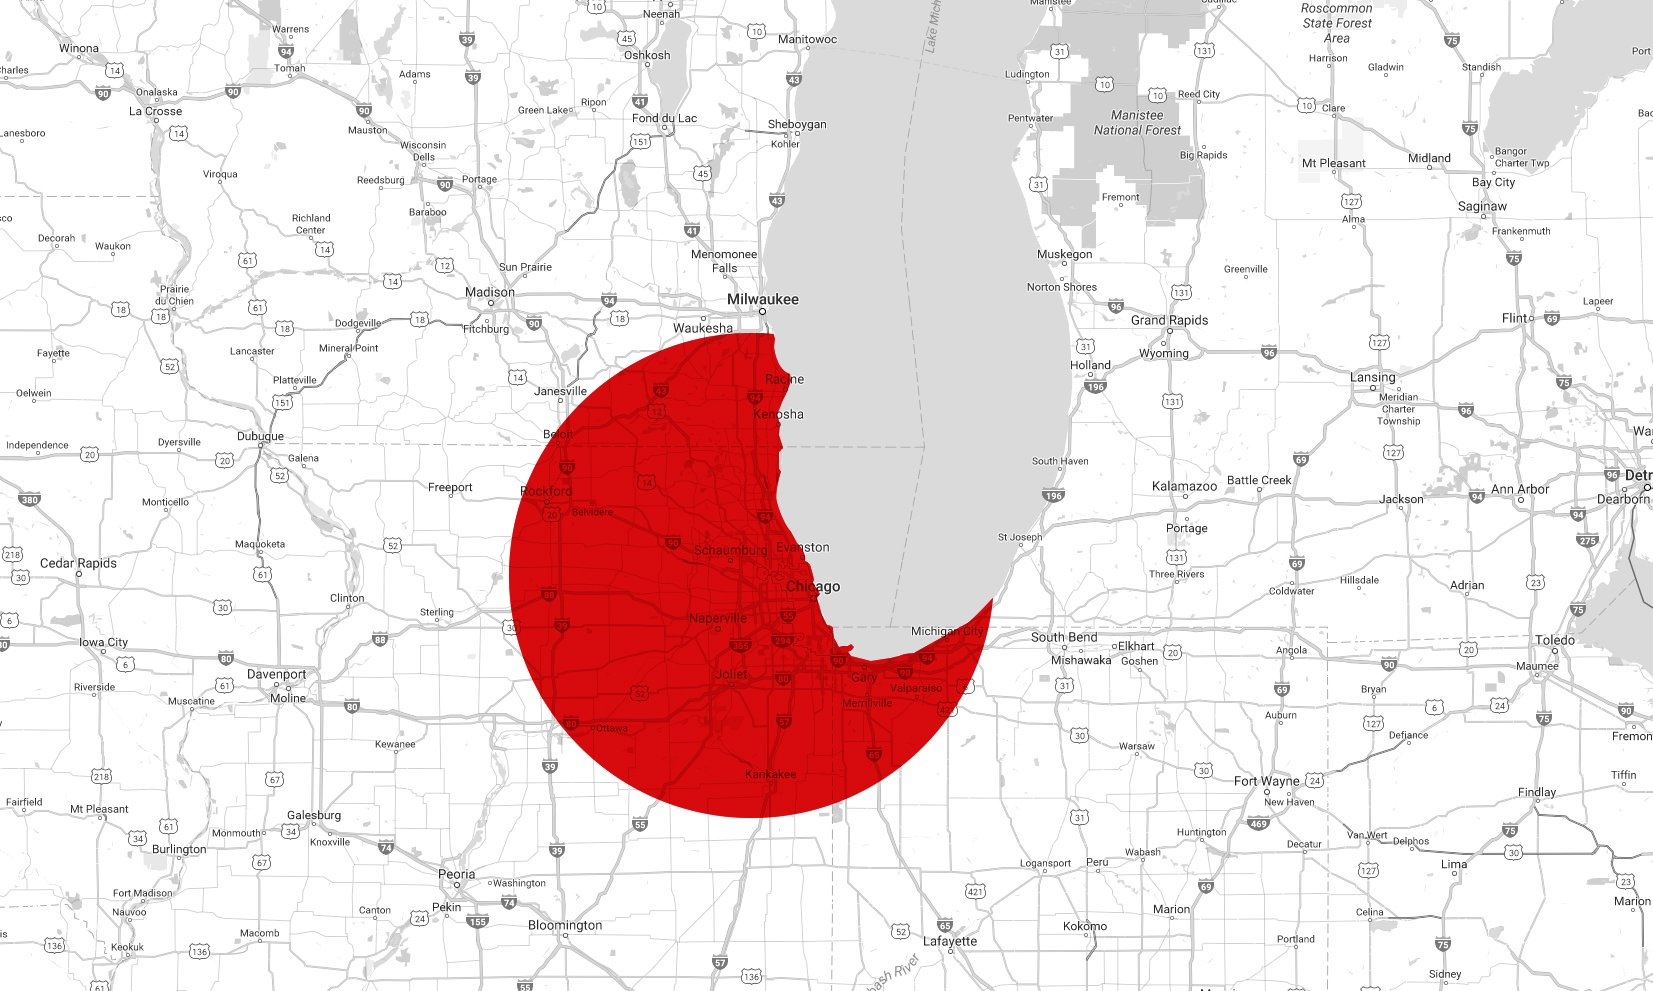 Ram Jack map service area